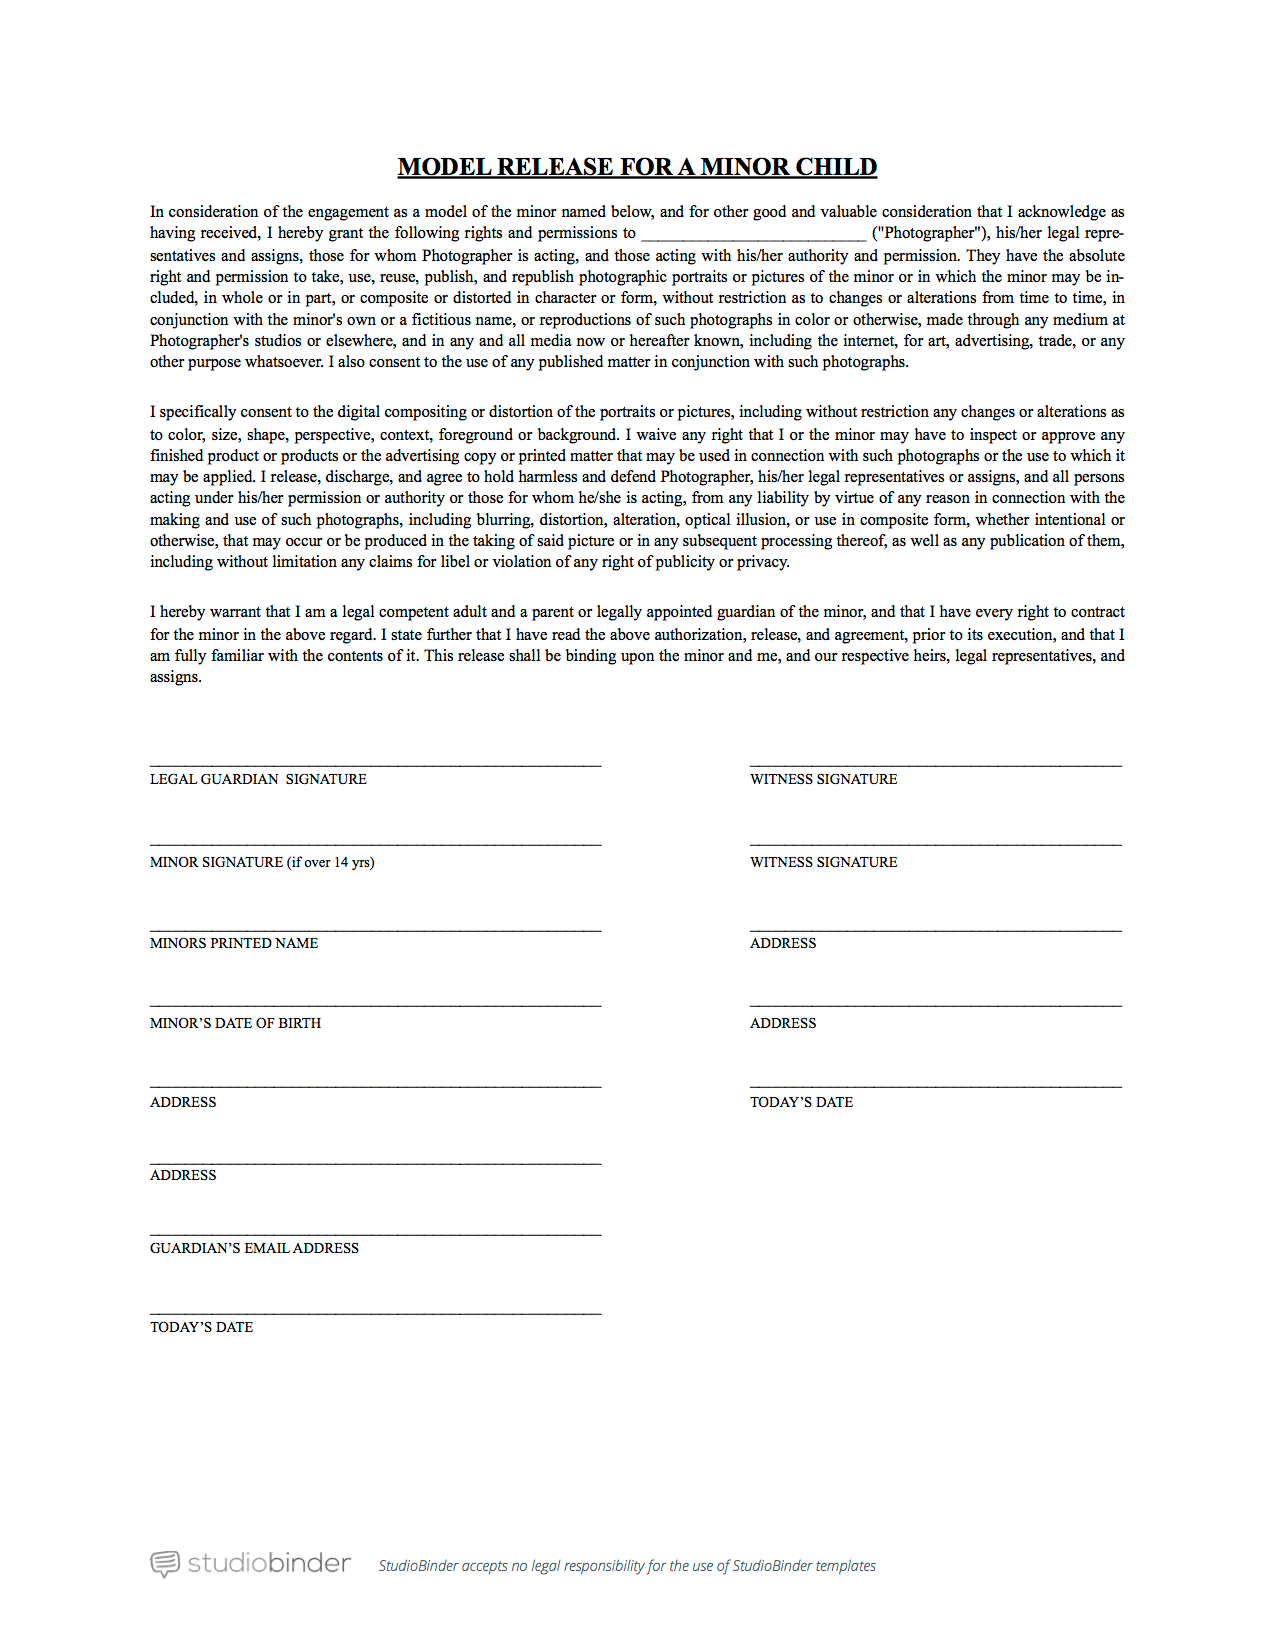 legal release form template disaster recovery specialist